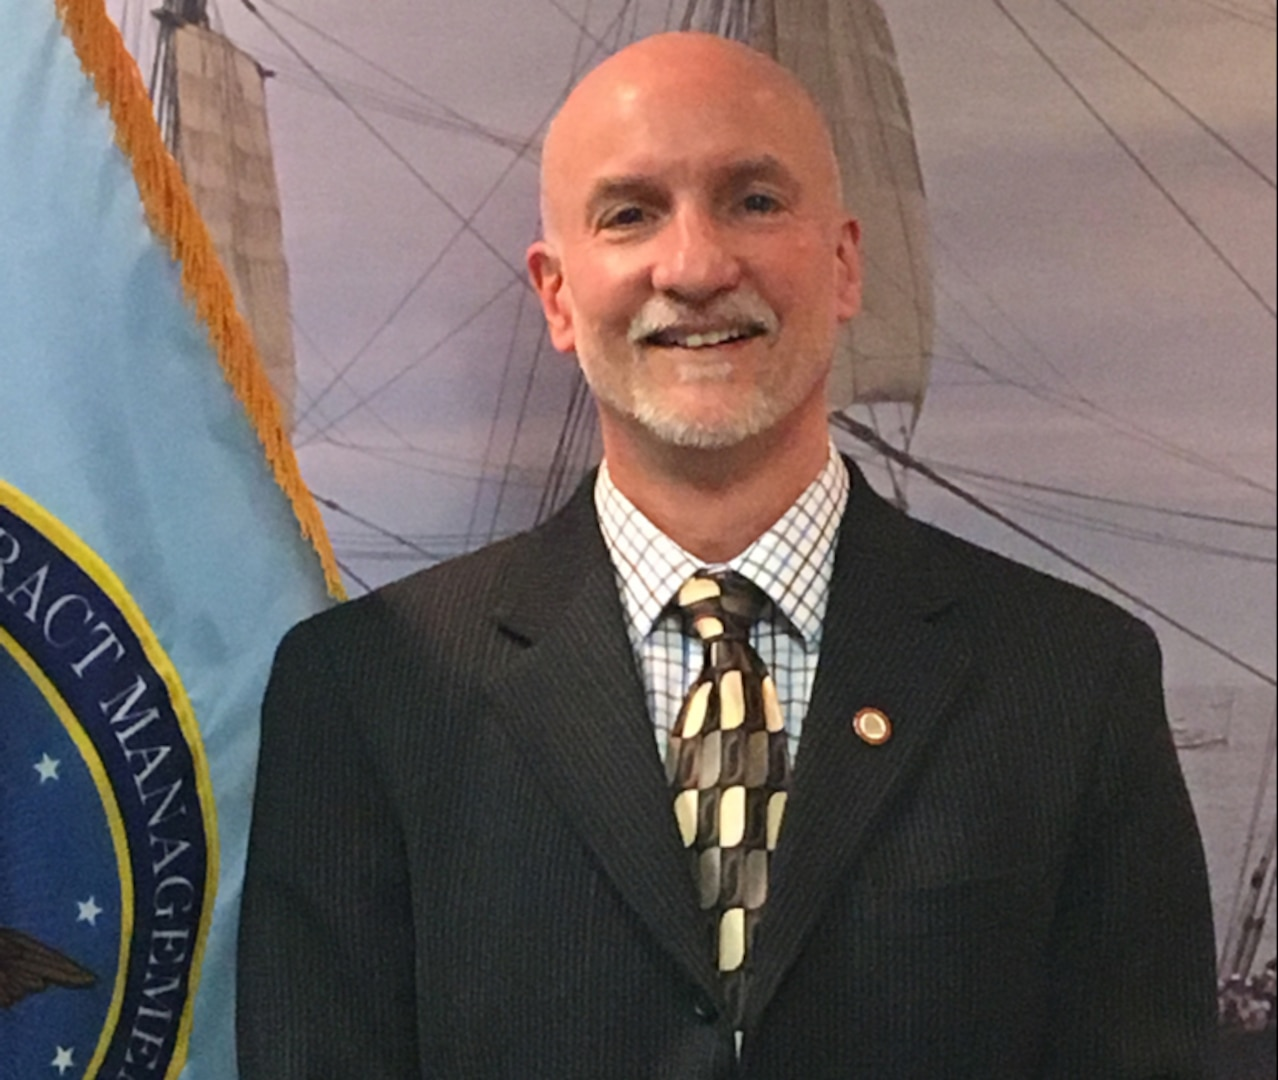 Smiling man wears a dark suit and stands by the DCMA flag